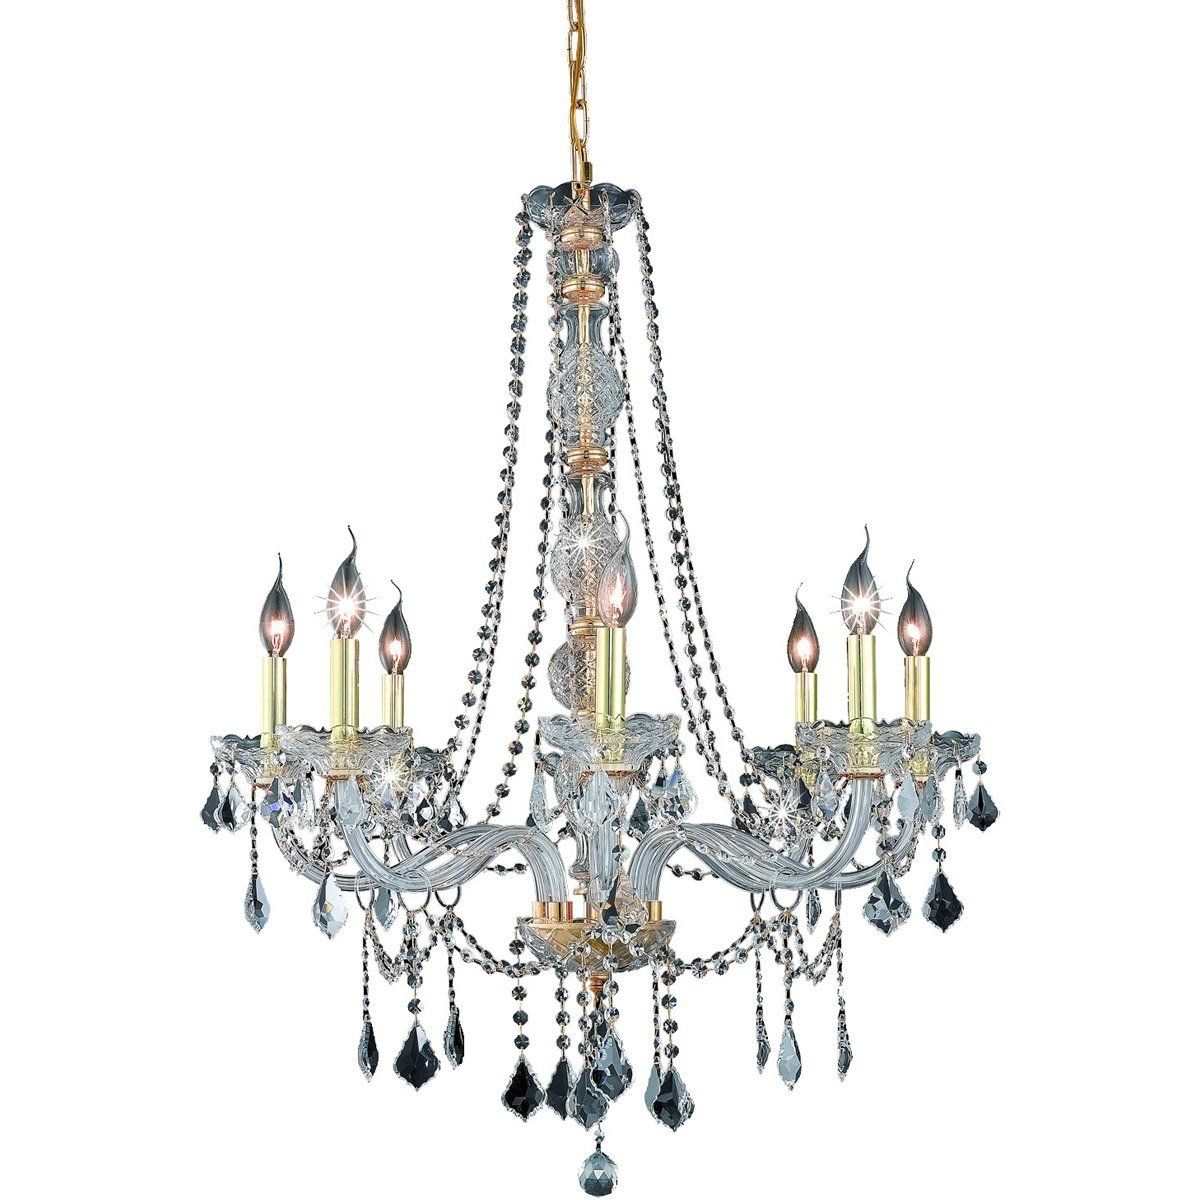 Verona 28 crystal chandelier with 8 lights gold finish and clear verona 28 verona 28 crystal chandelier arubaitofo Gallery